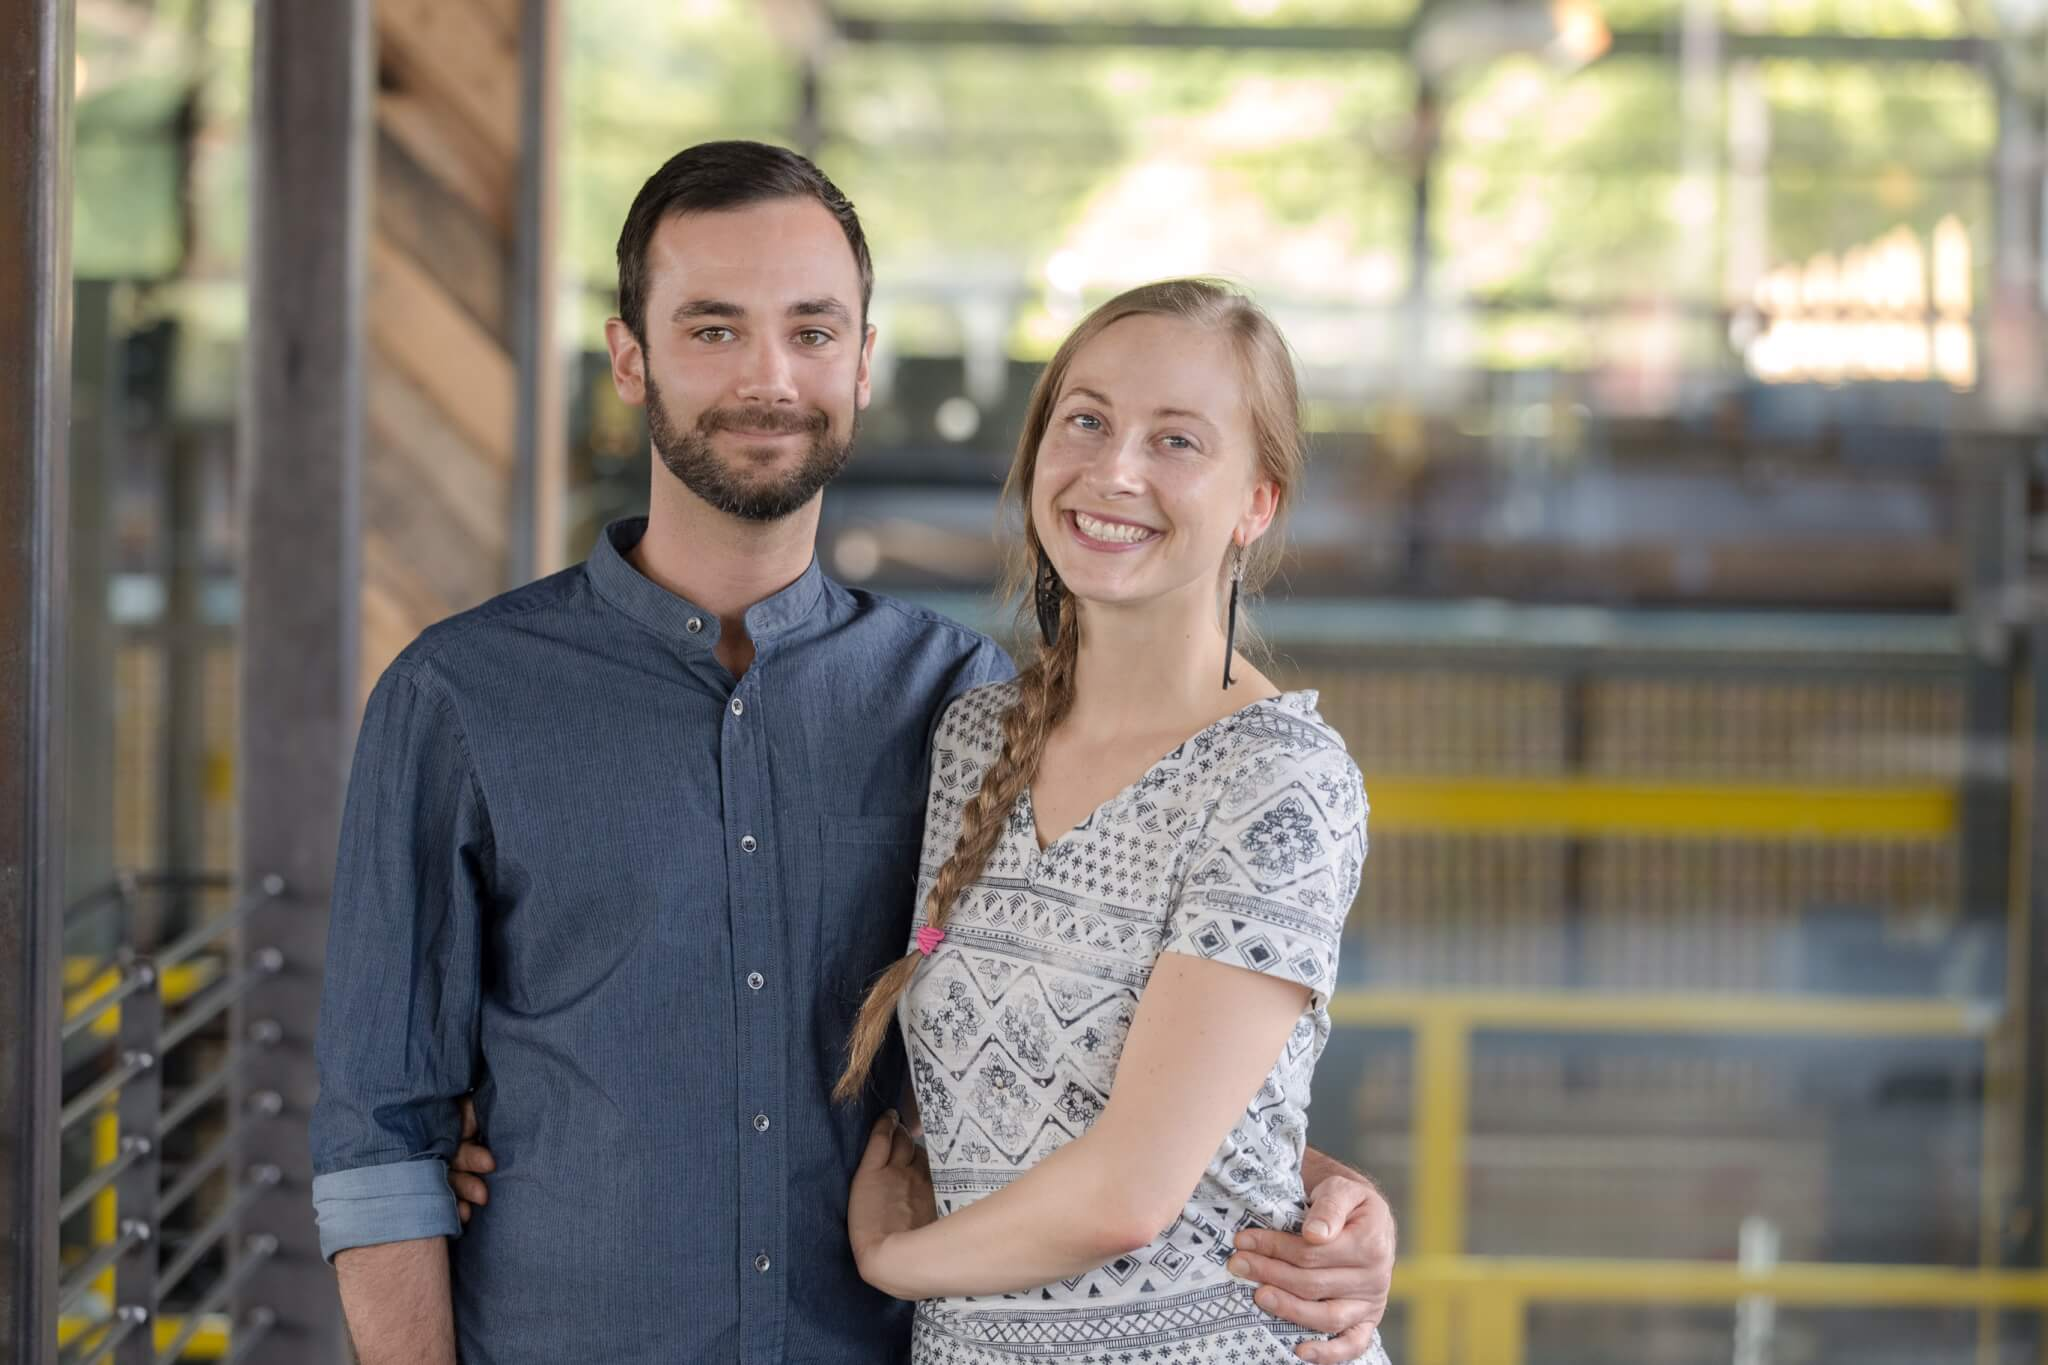 FGCU alumni become their own bosses with Elements Real Food cafe